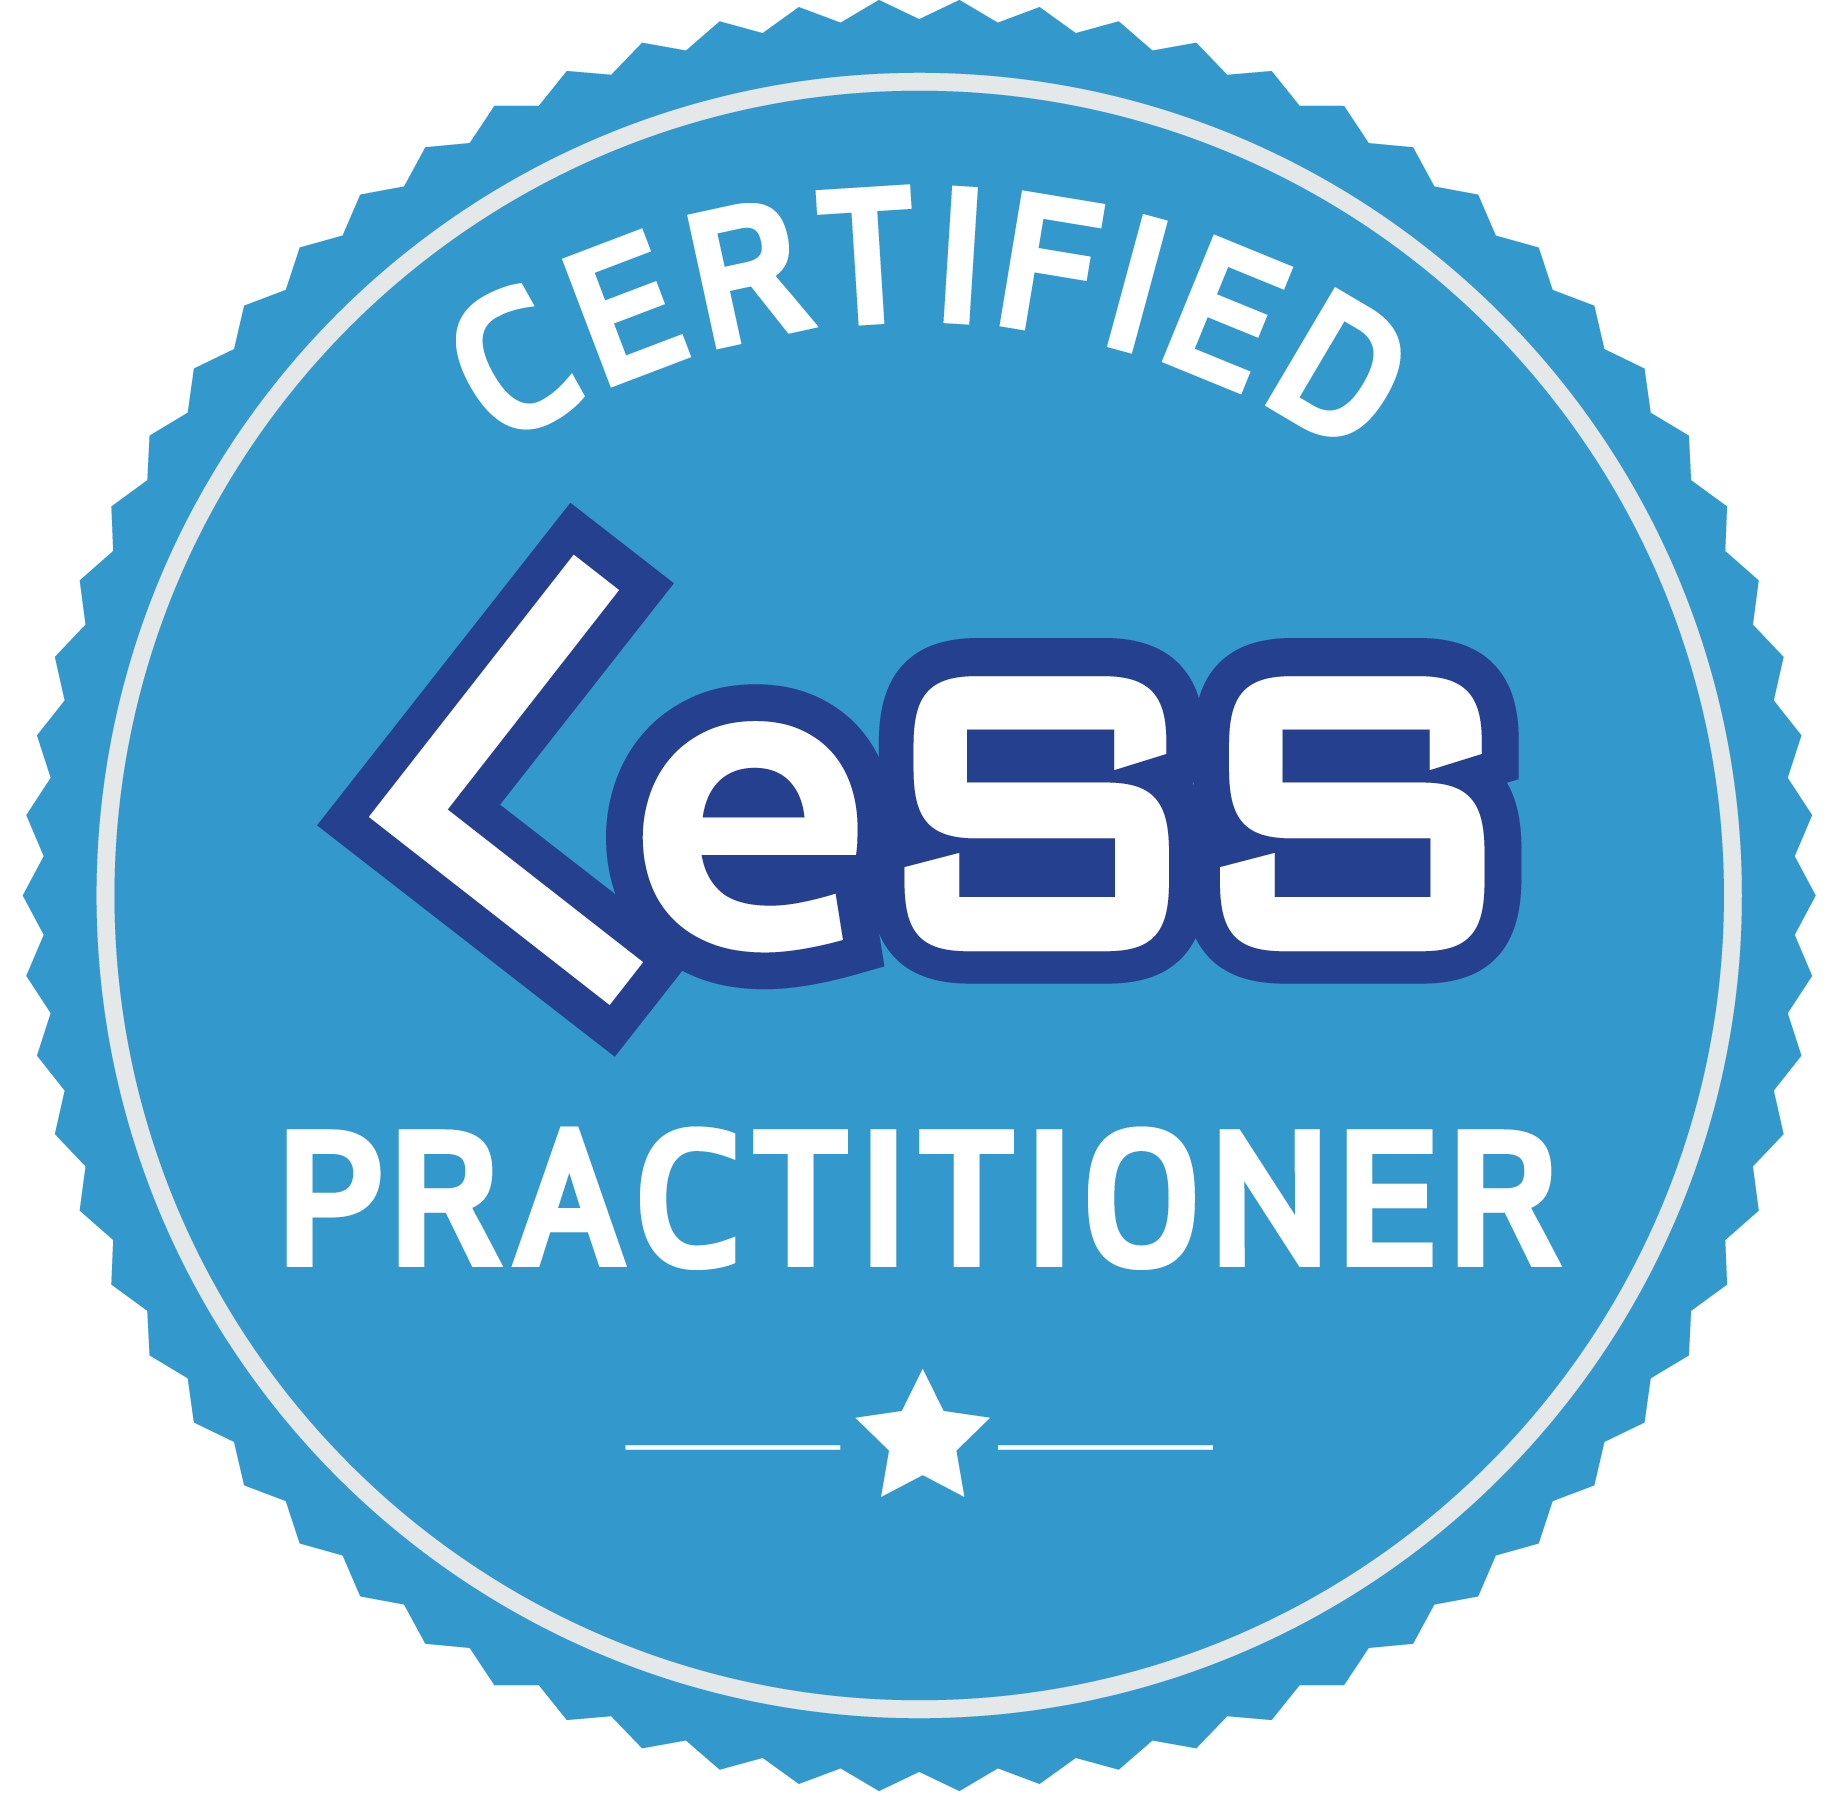 Certified LeSS Practitioner - Principles to Practices